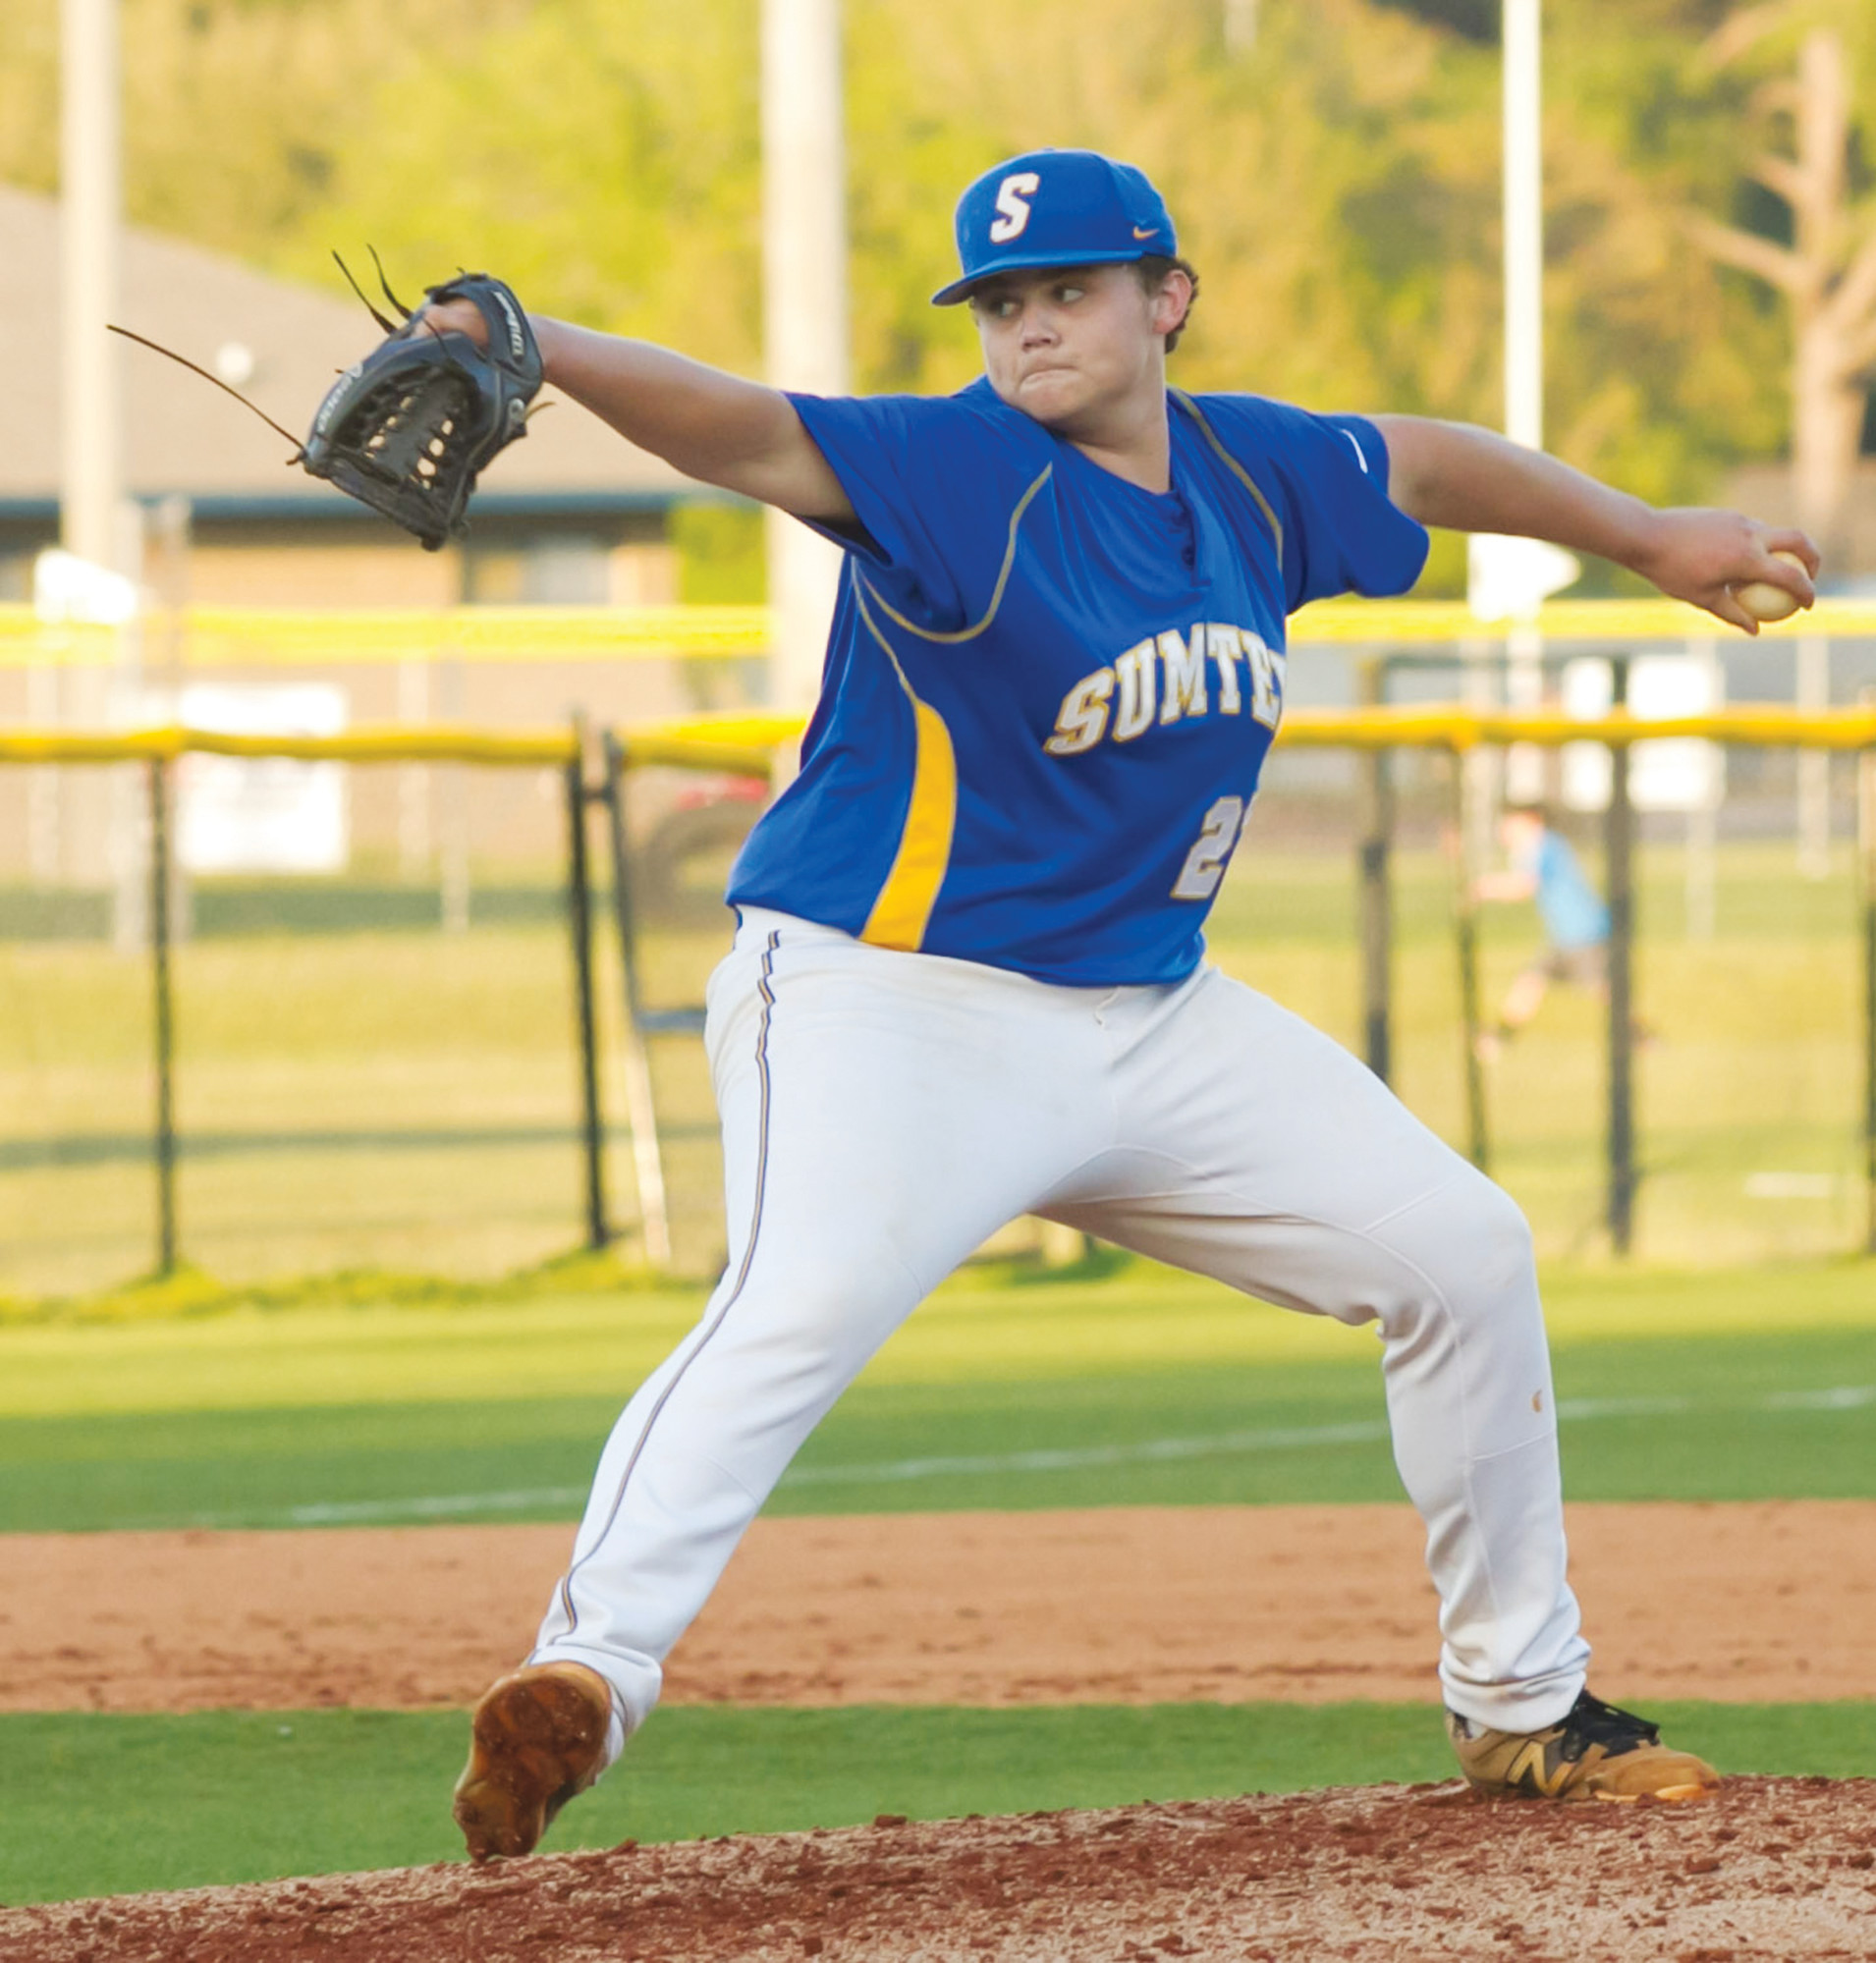 Sumter's Josh Bryant delivers a pitch in the Gamecocks' 3-2, 8-inning win over West Florence on Tuesday at Gamecock Field.